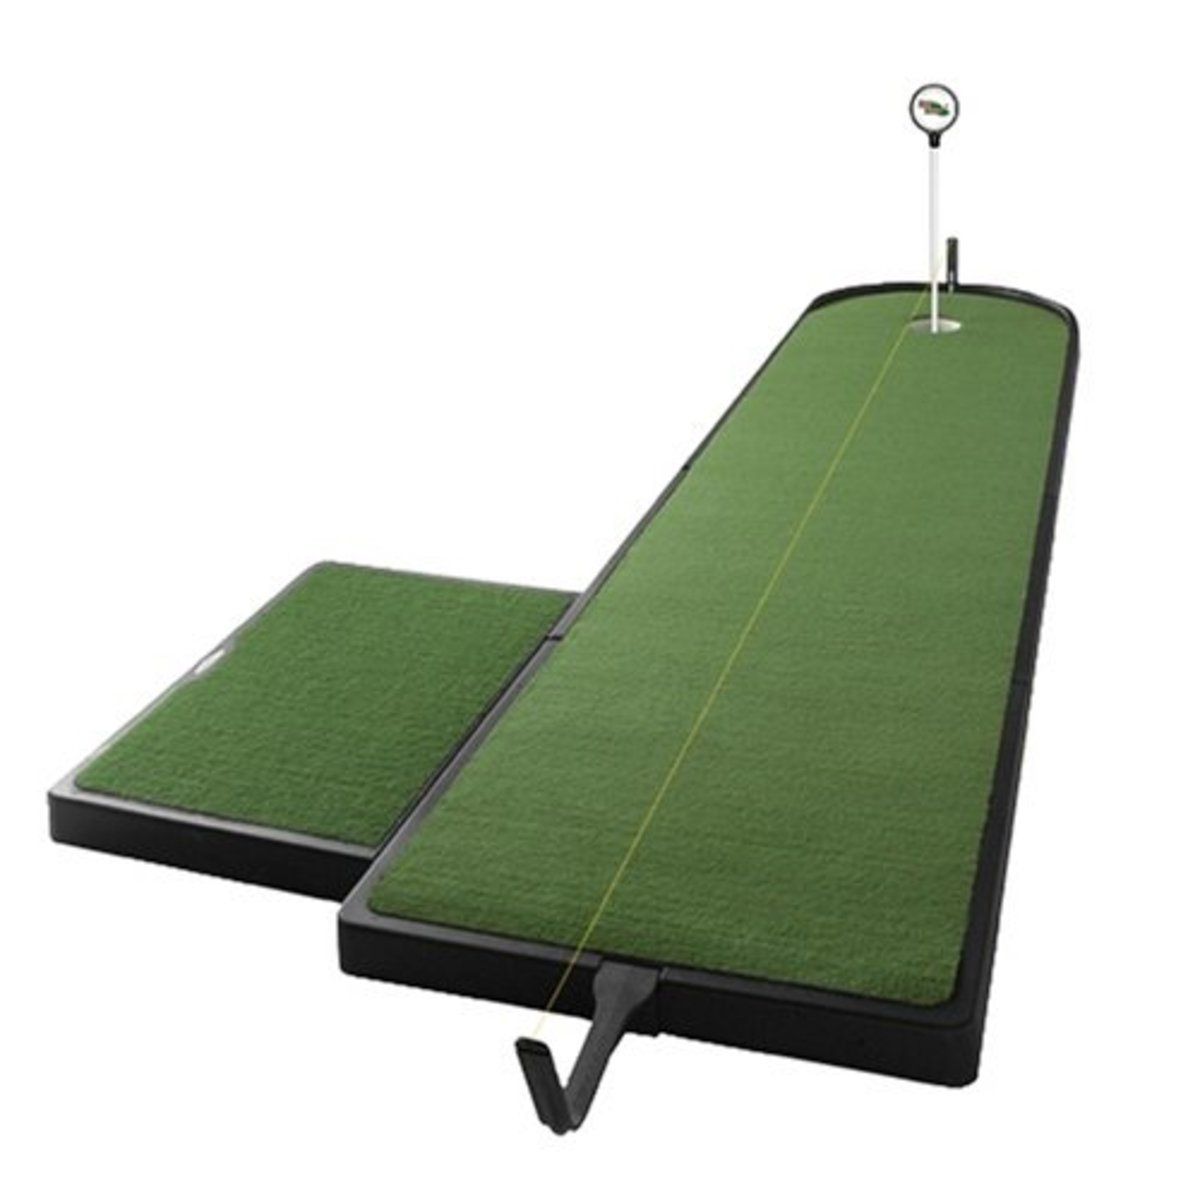 Find The Best Indoor Putting Green For Your Home | Top 4 Review